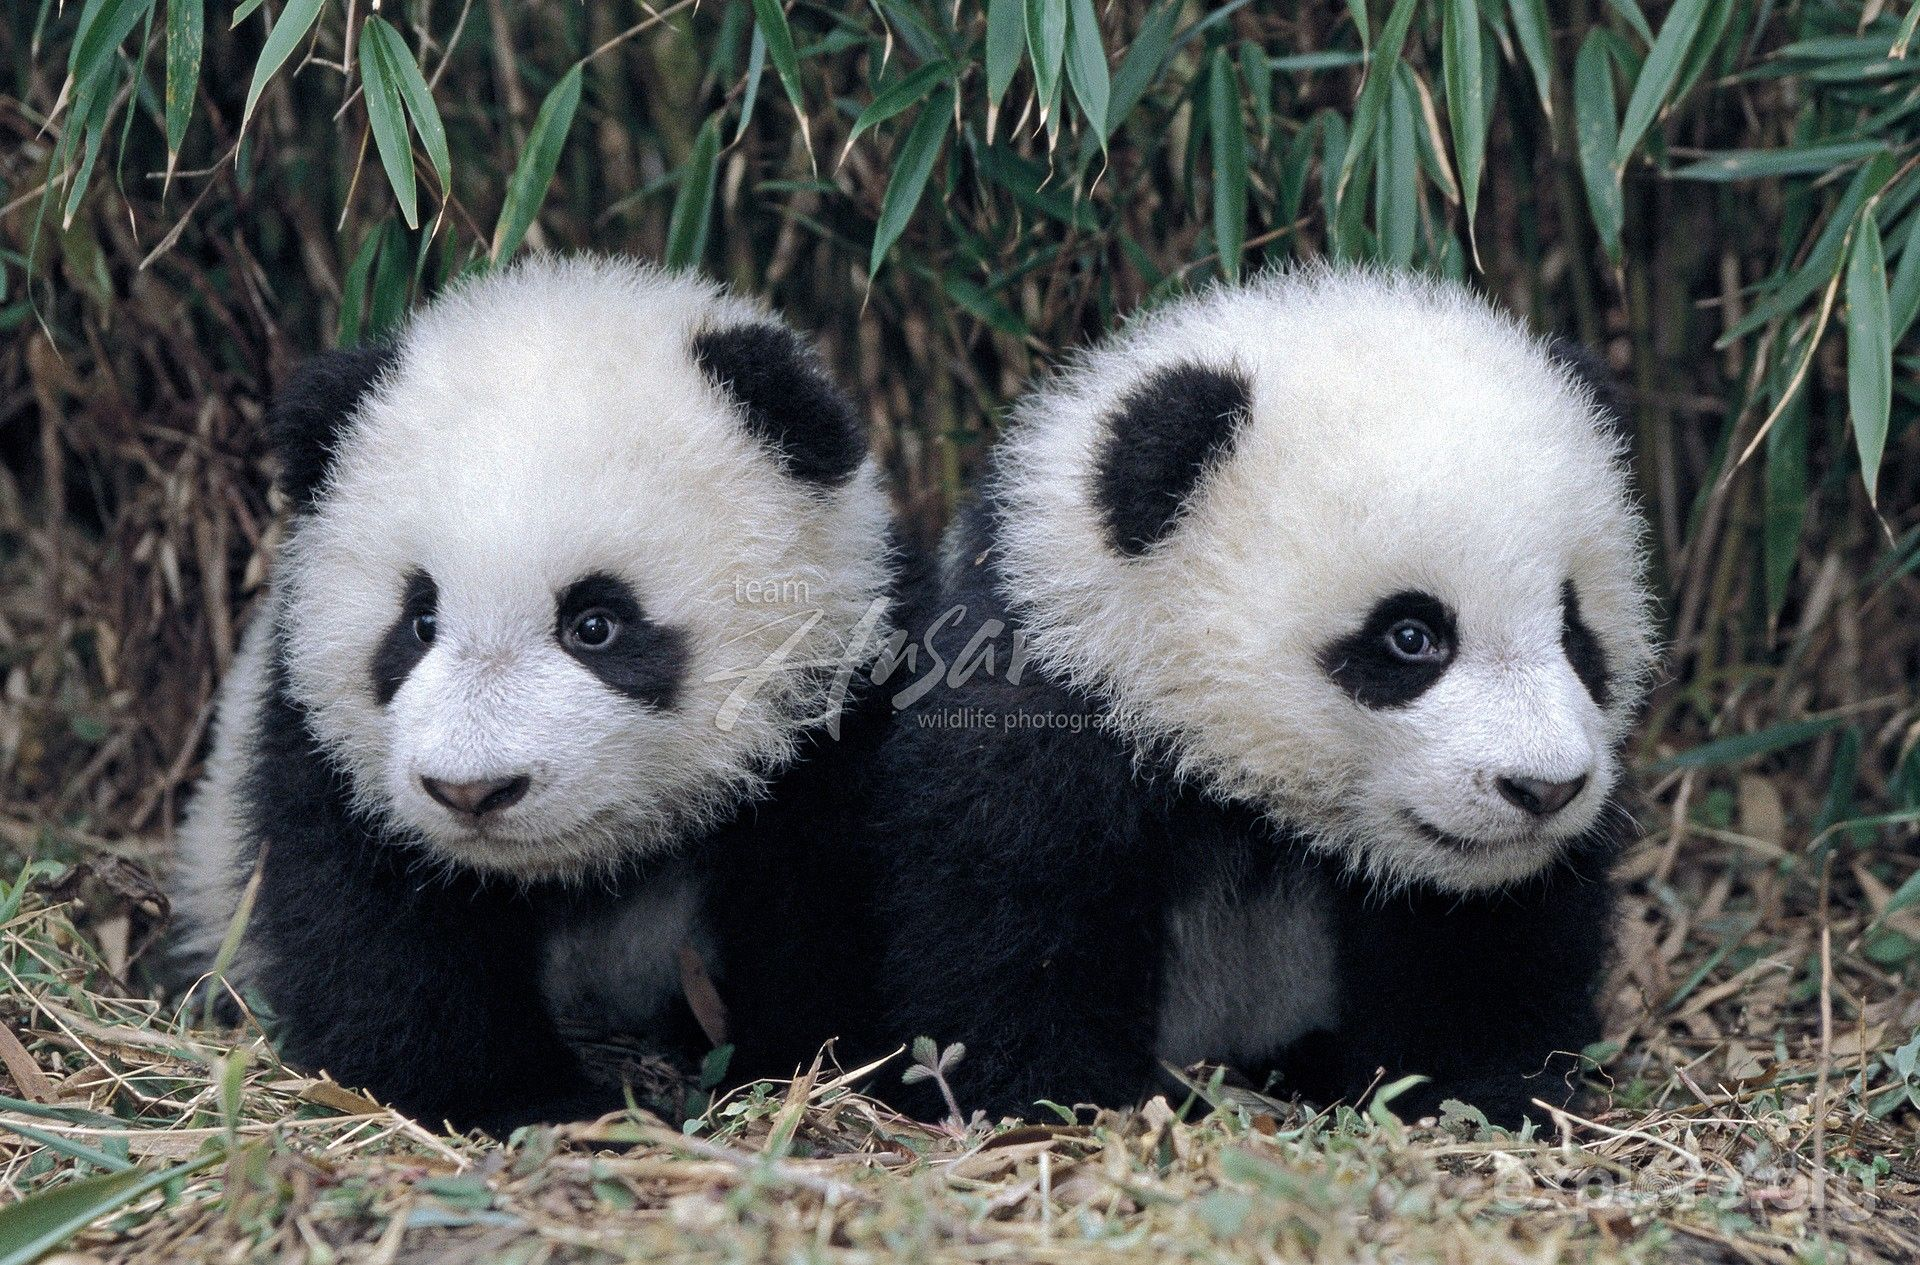 an overview of the giant panda an endangered specie native to china The giant panda is probably the most recognisable endangered animal in the world they are solitary bears found only in china's mountainous bamboo forests.